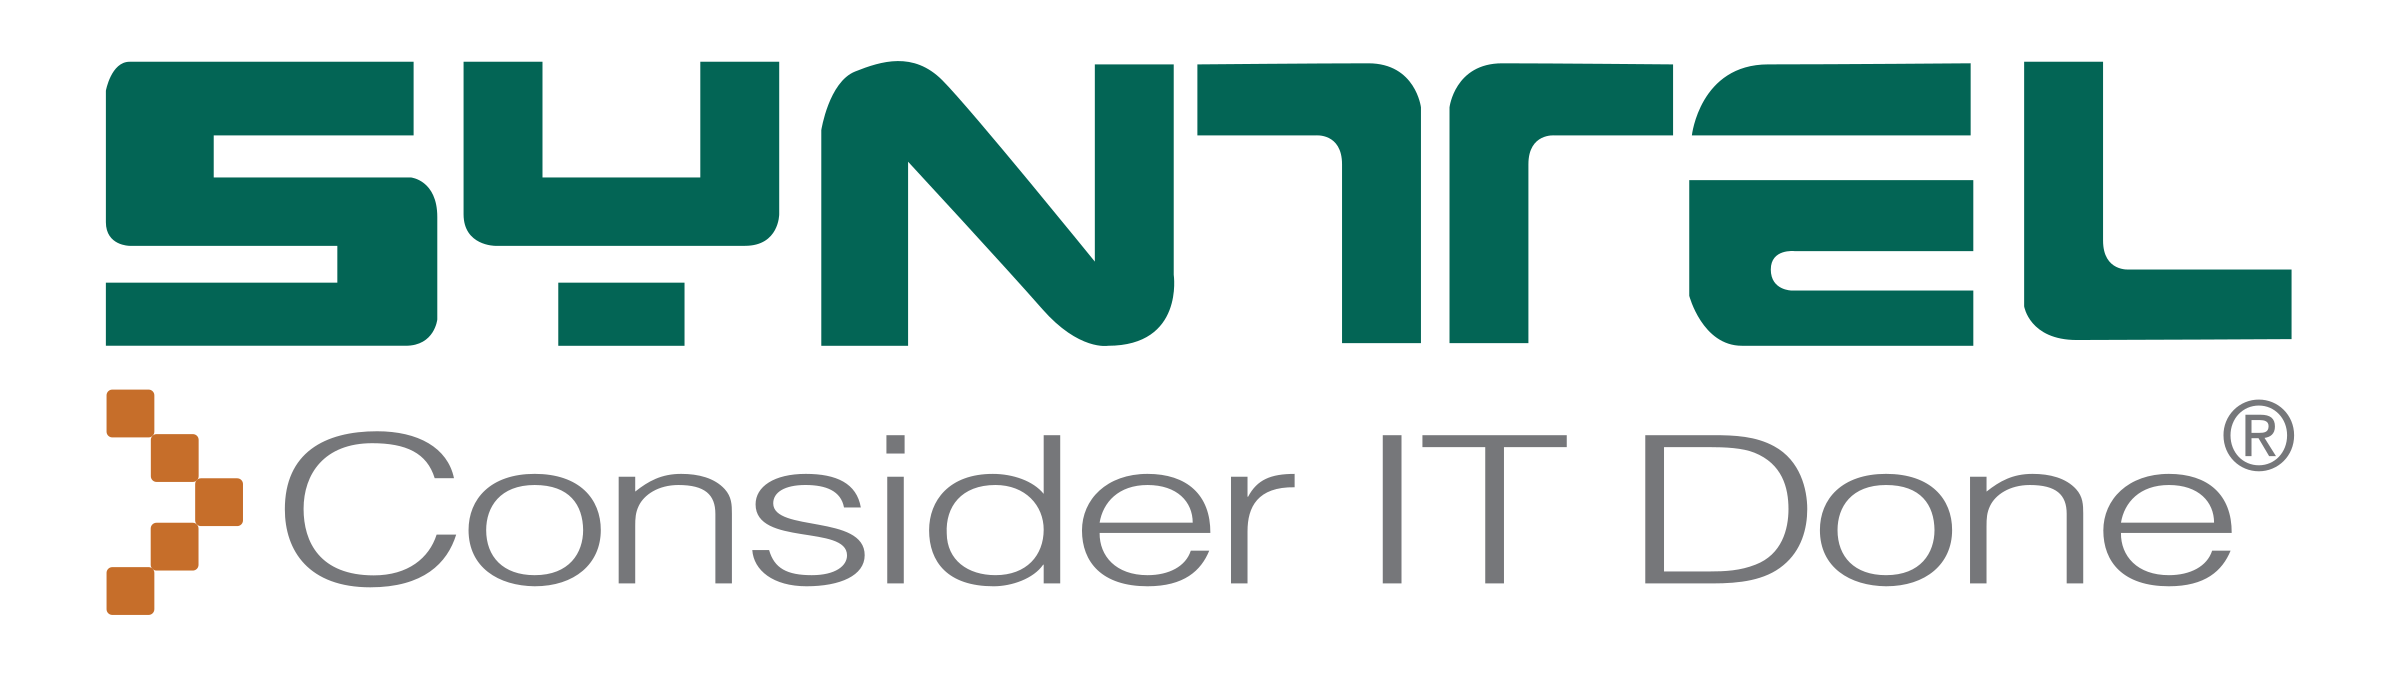 syntel-1-logo-png-transparent